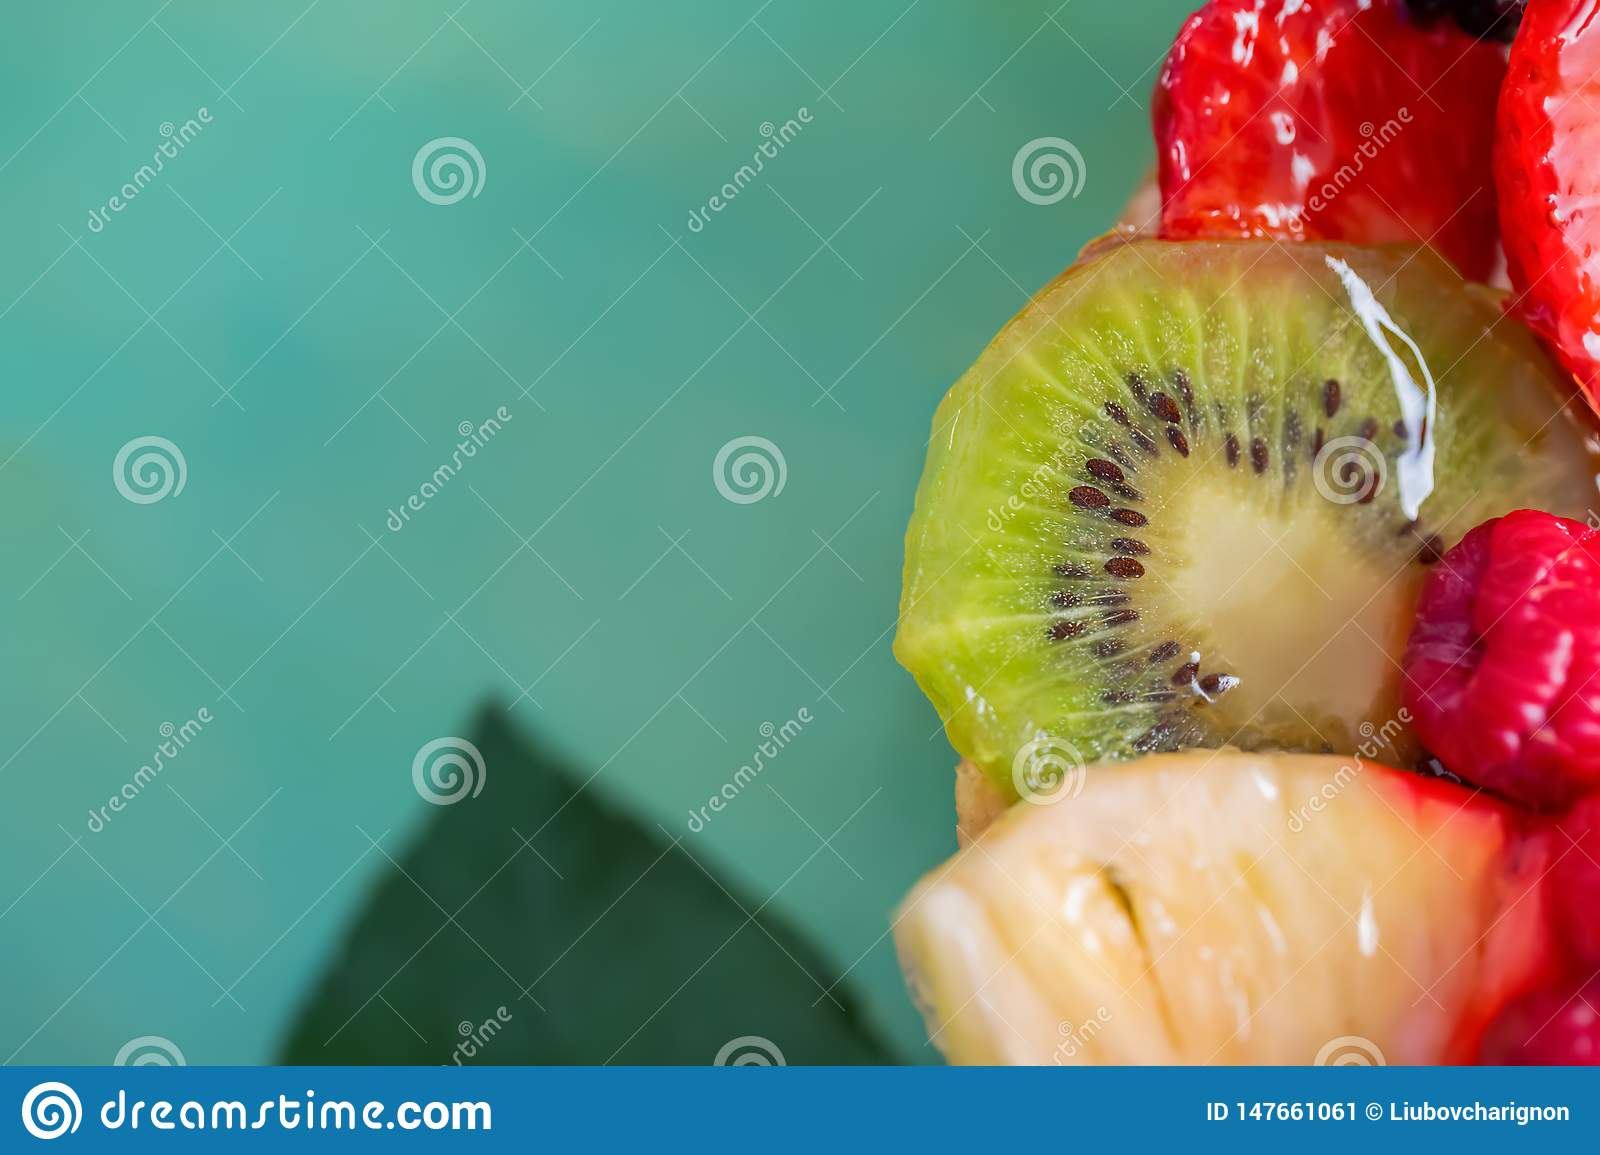 Slice kiwi and a variety of fresh fruits in sweet gelatin. Berries close-up in soft focus. Delicious dessert.